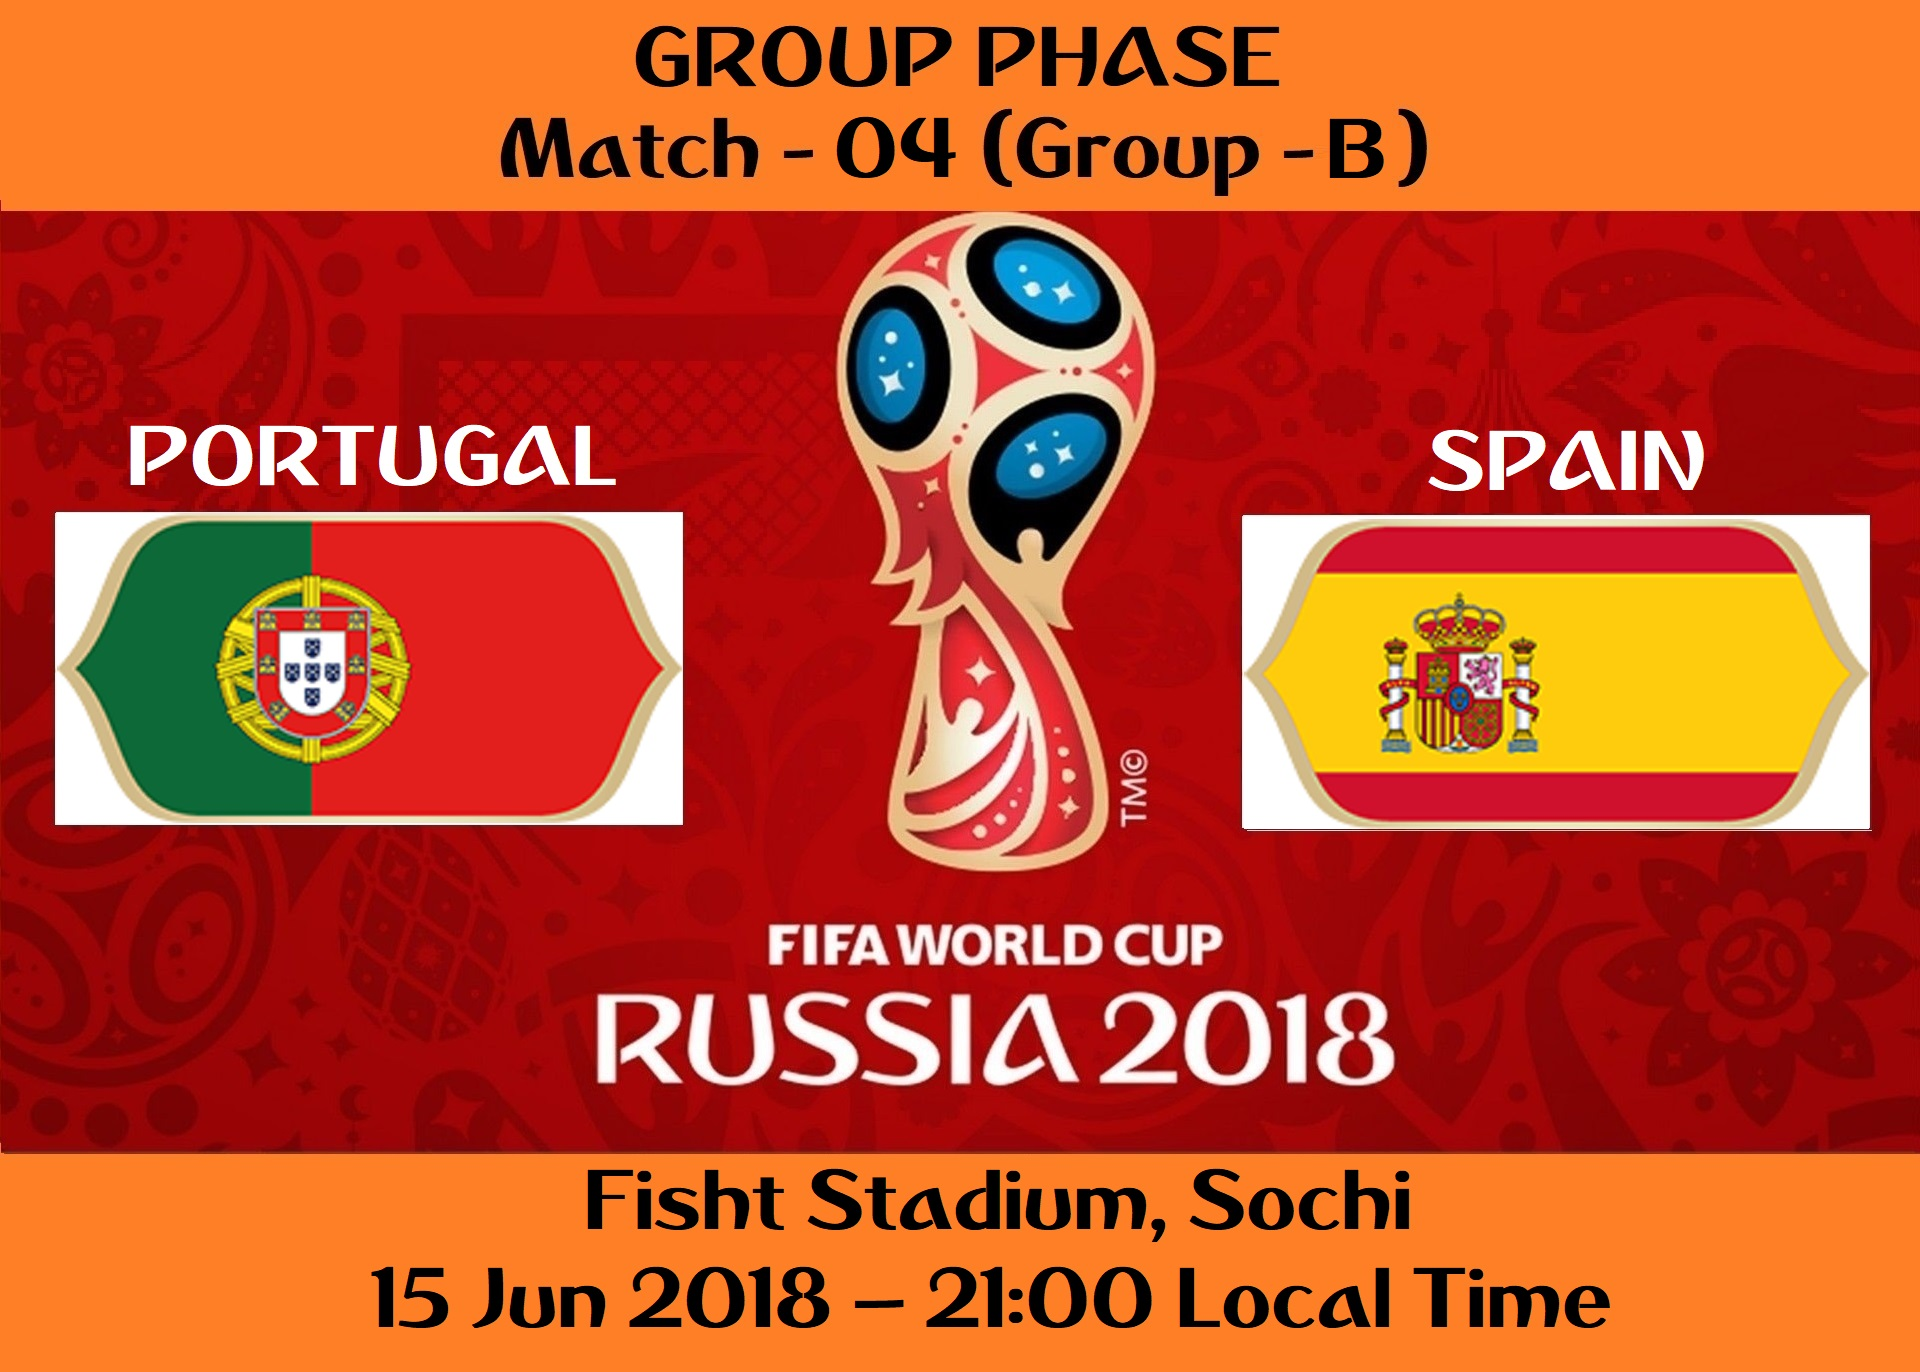 FIFA WORLD CUP 2018 MATCH - 4 - PORTUGAL vs SPAIN